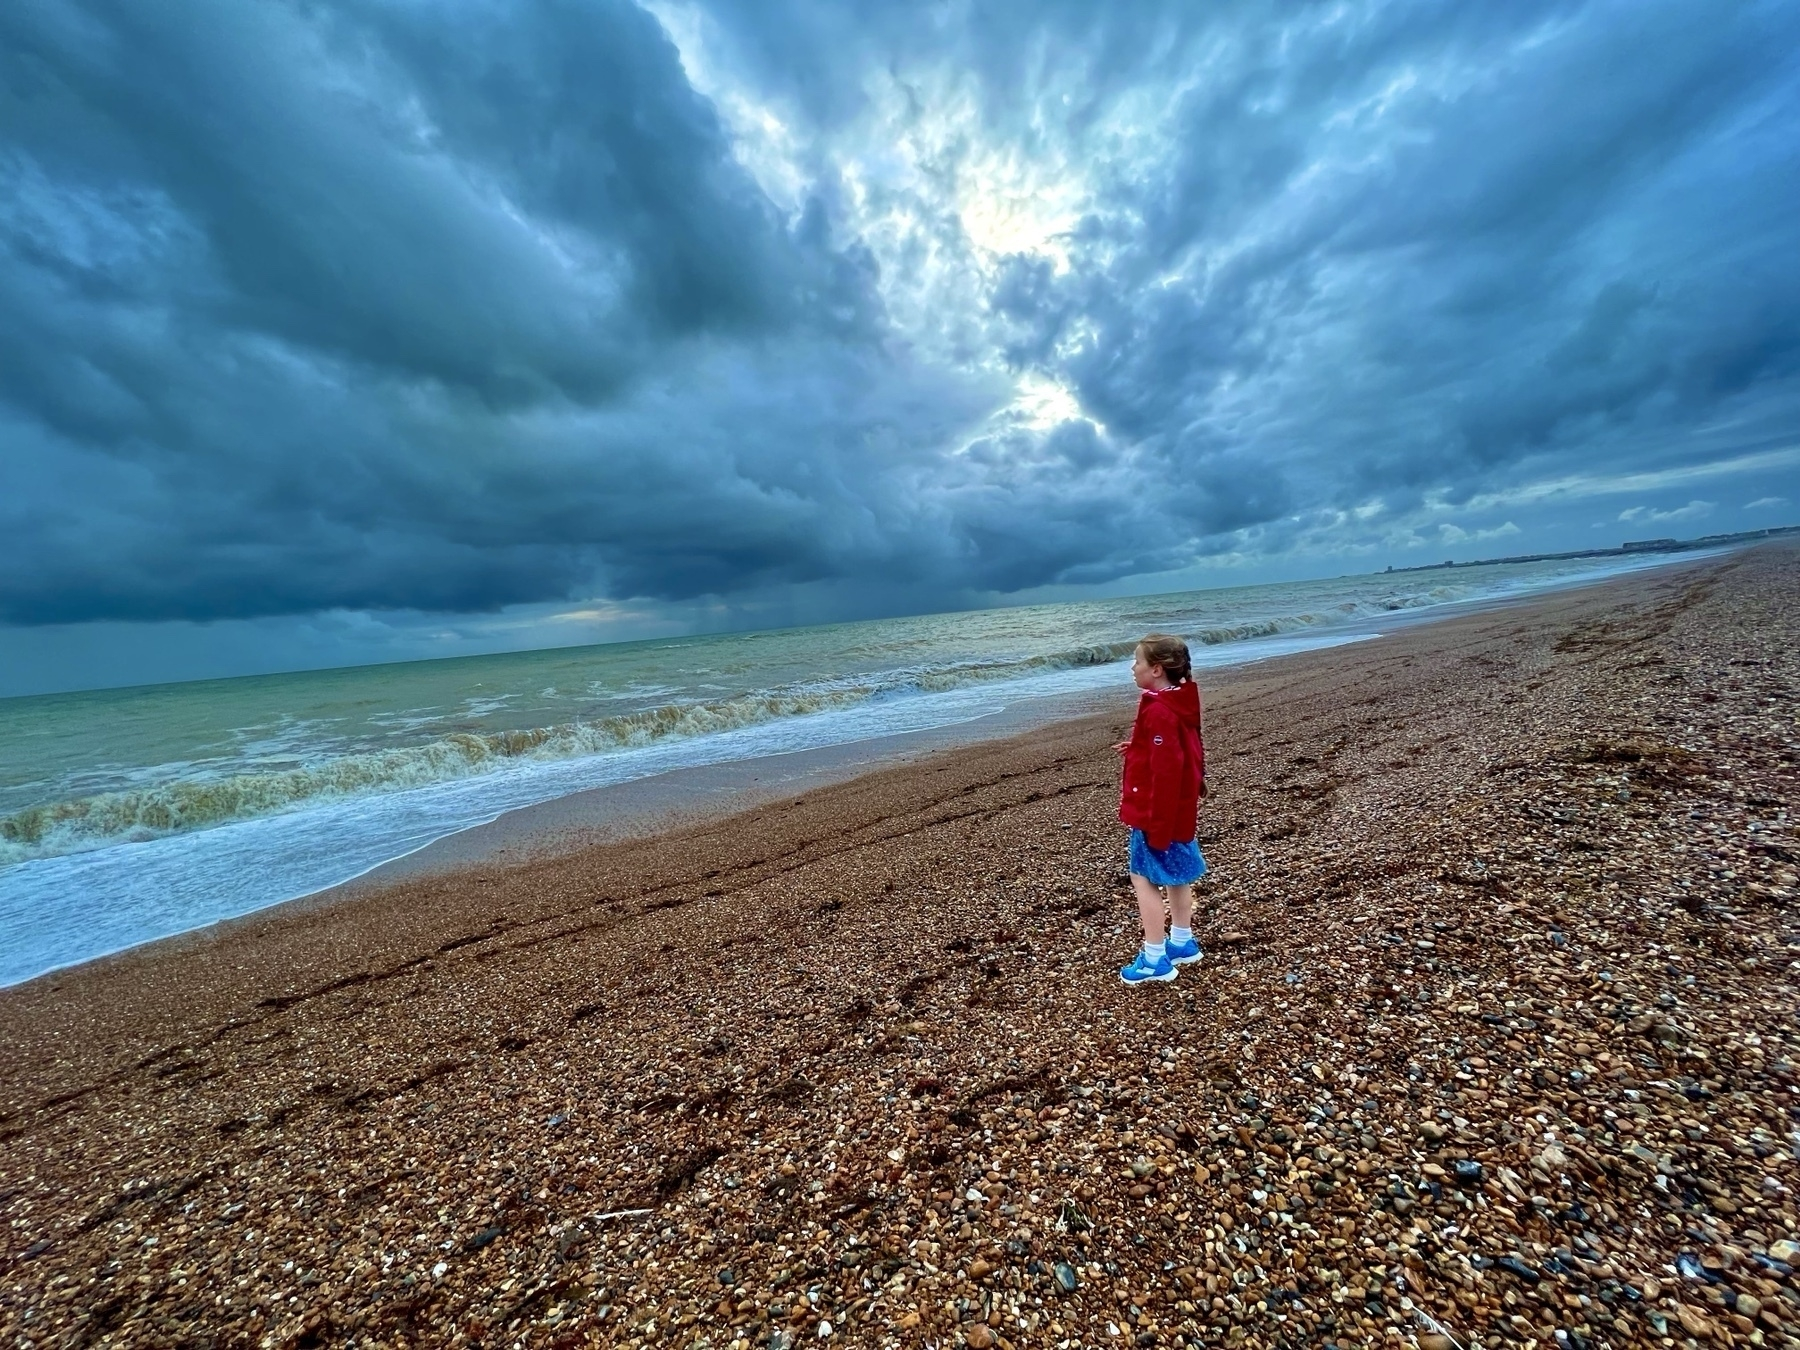 A girl standing on a shingle beach with stormy clouds overhead.